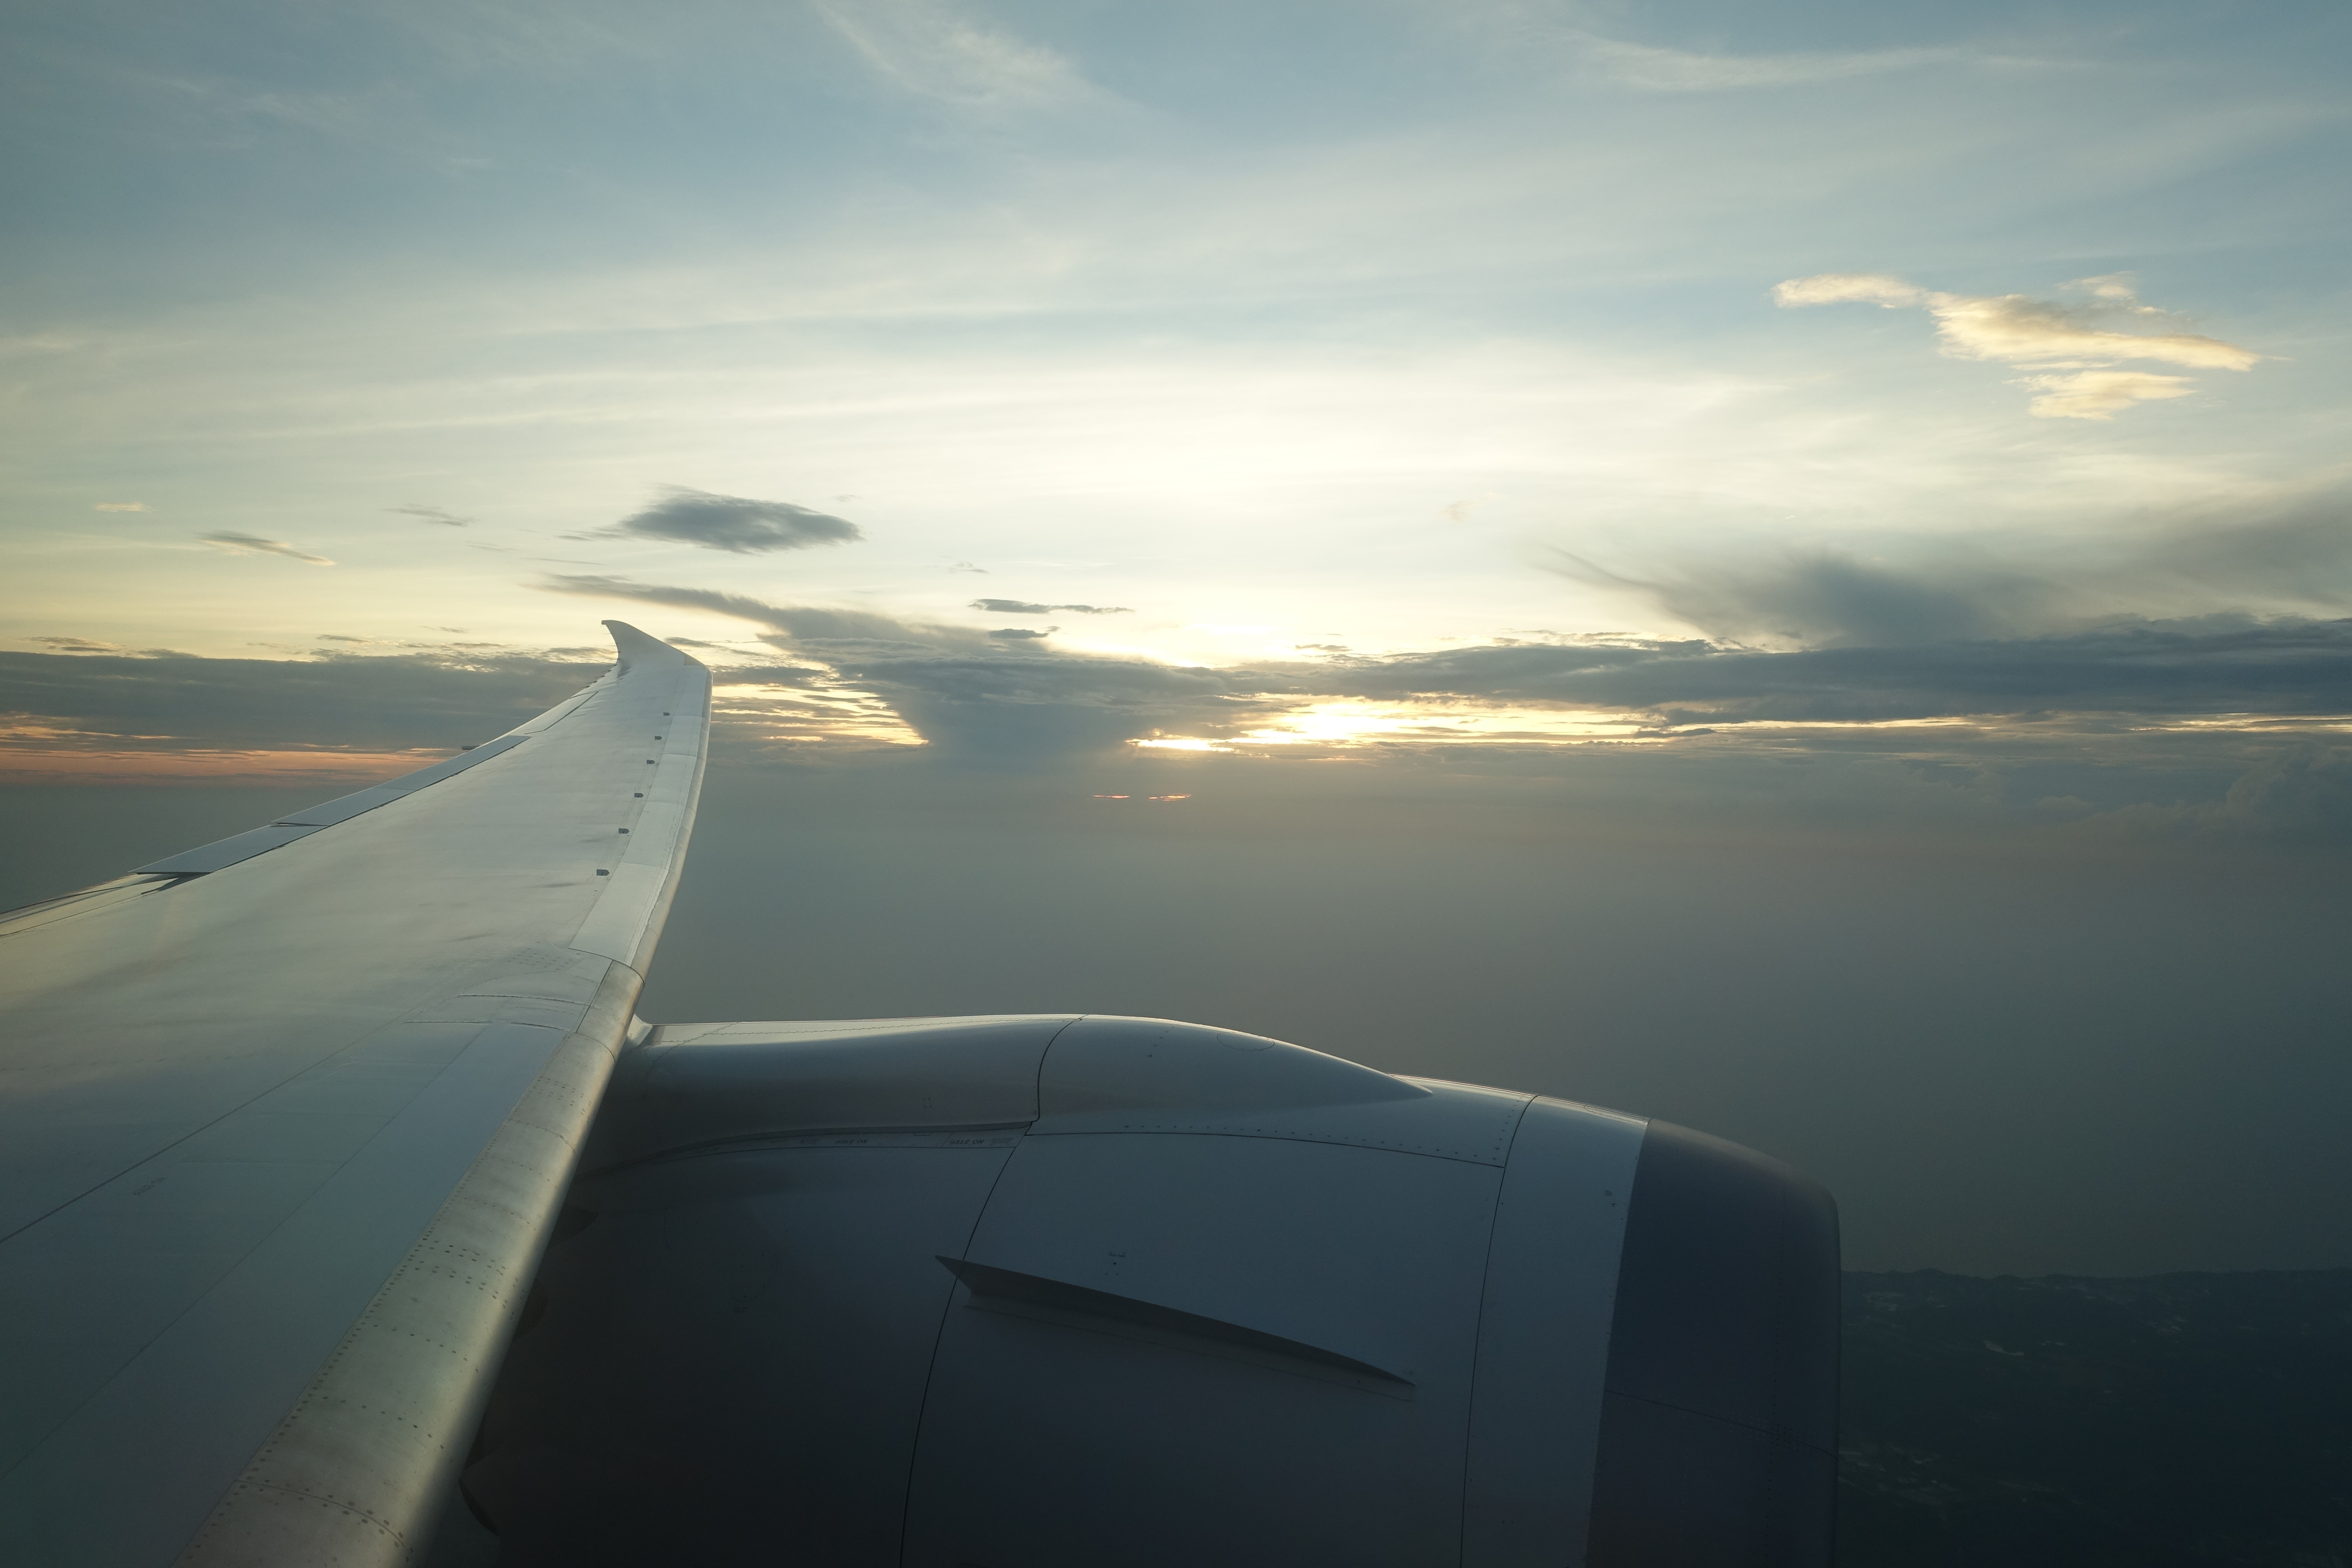 Looking towards the setting sun over the wing